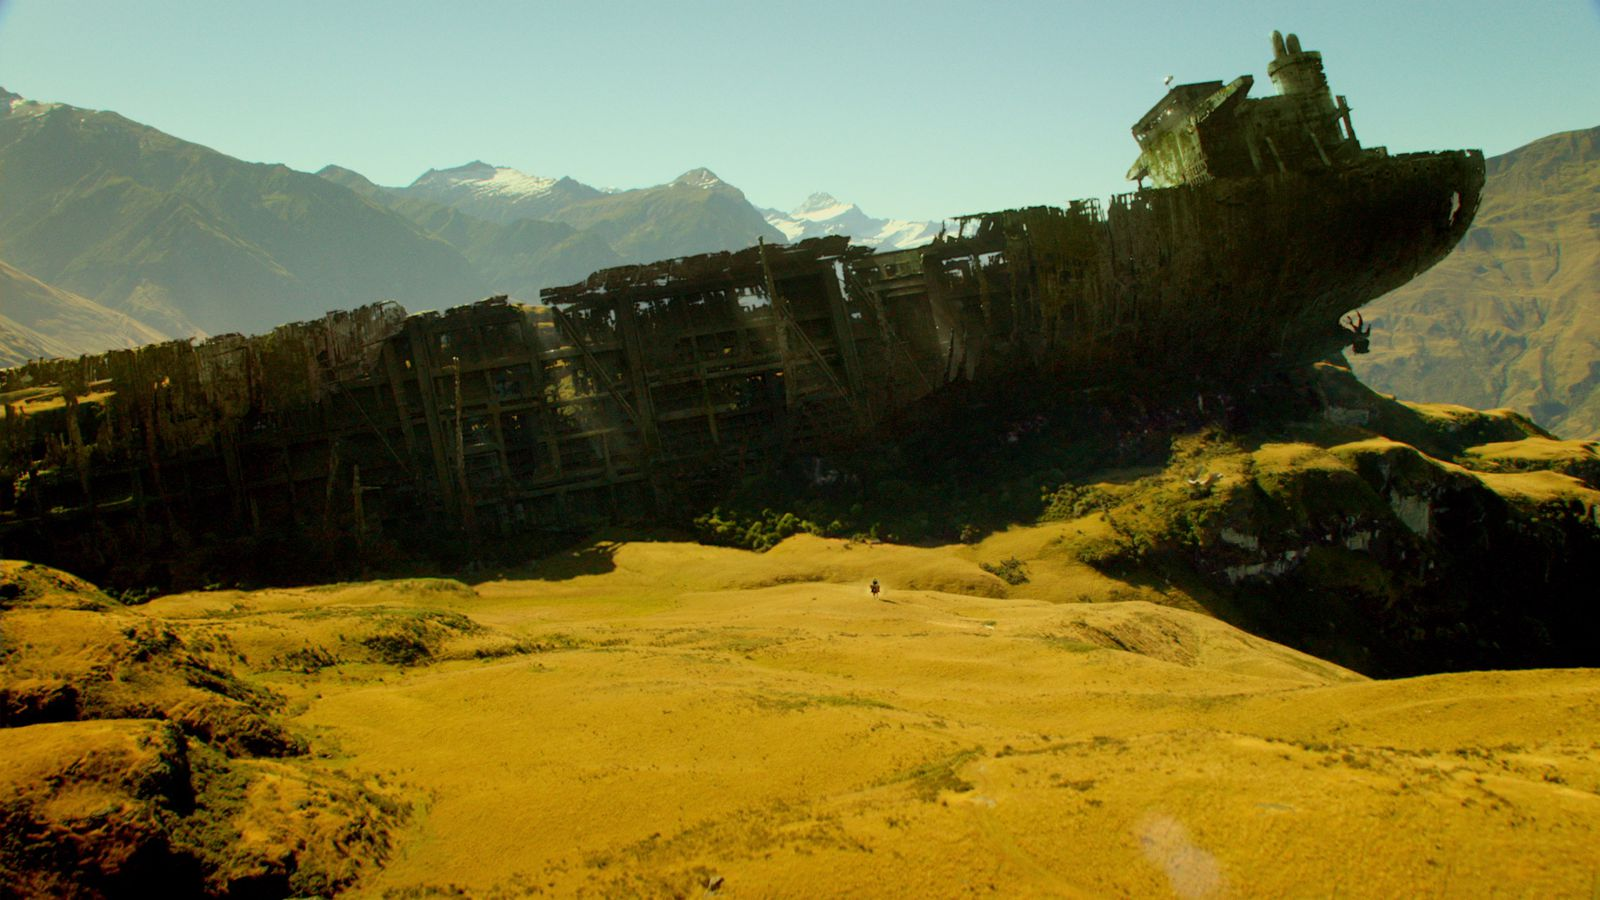 The Shannara Chronicles Promises To Deliver The Next Game